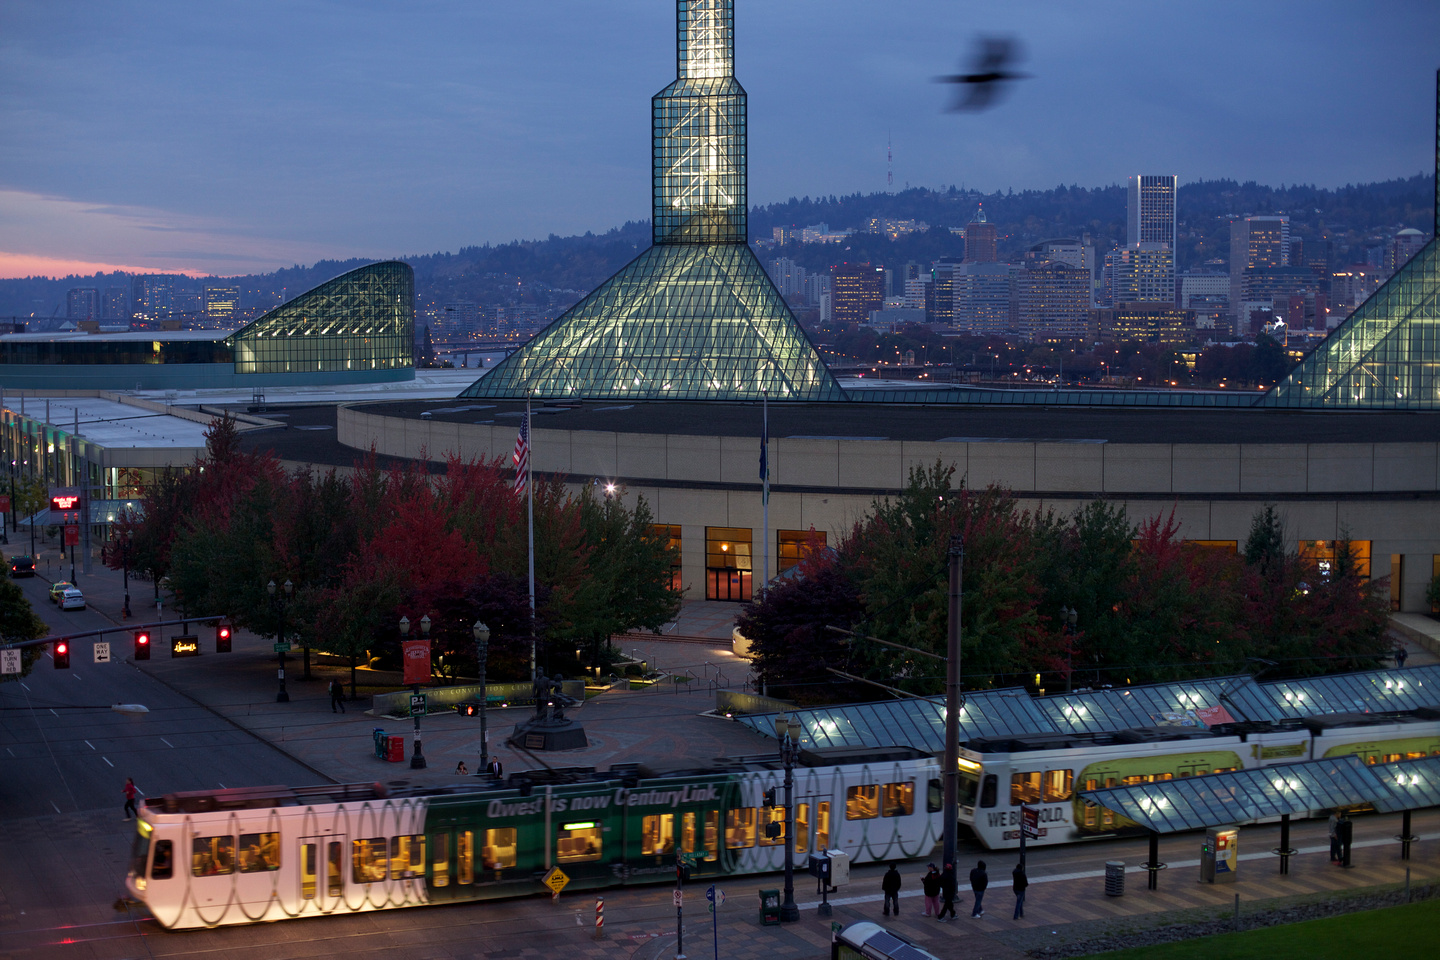 The CBC's host venue, the Oregon Convention Center. Photo courtesy travelportland.com.